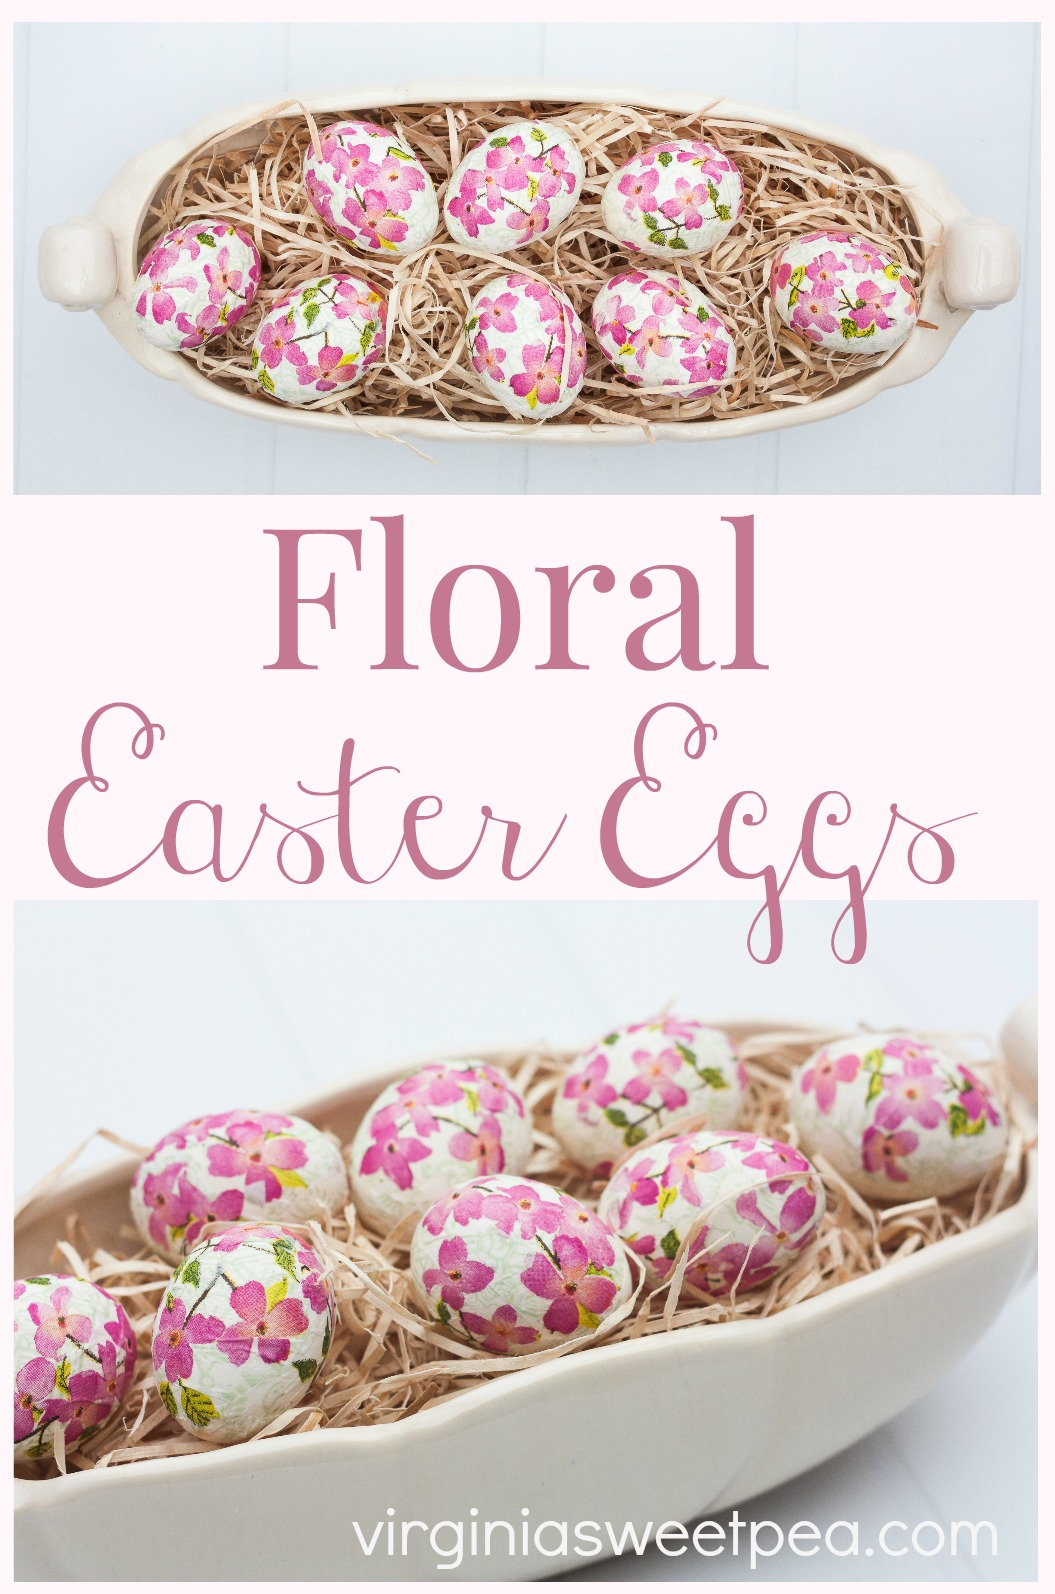 DIY Decoupaged Floral Easter Eggs - Learn how to make these decoupaged floral eggs. This is an easy craft that can be enjoyed every year. #easter #eastercraft #eastereggs #easterdecor #decoupage #decoupagedeggs